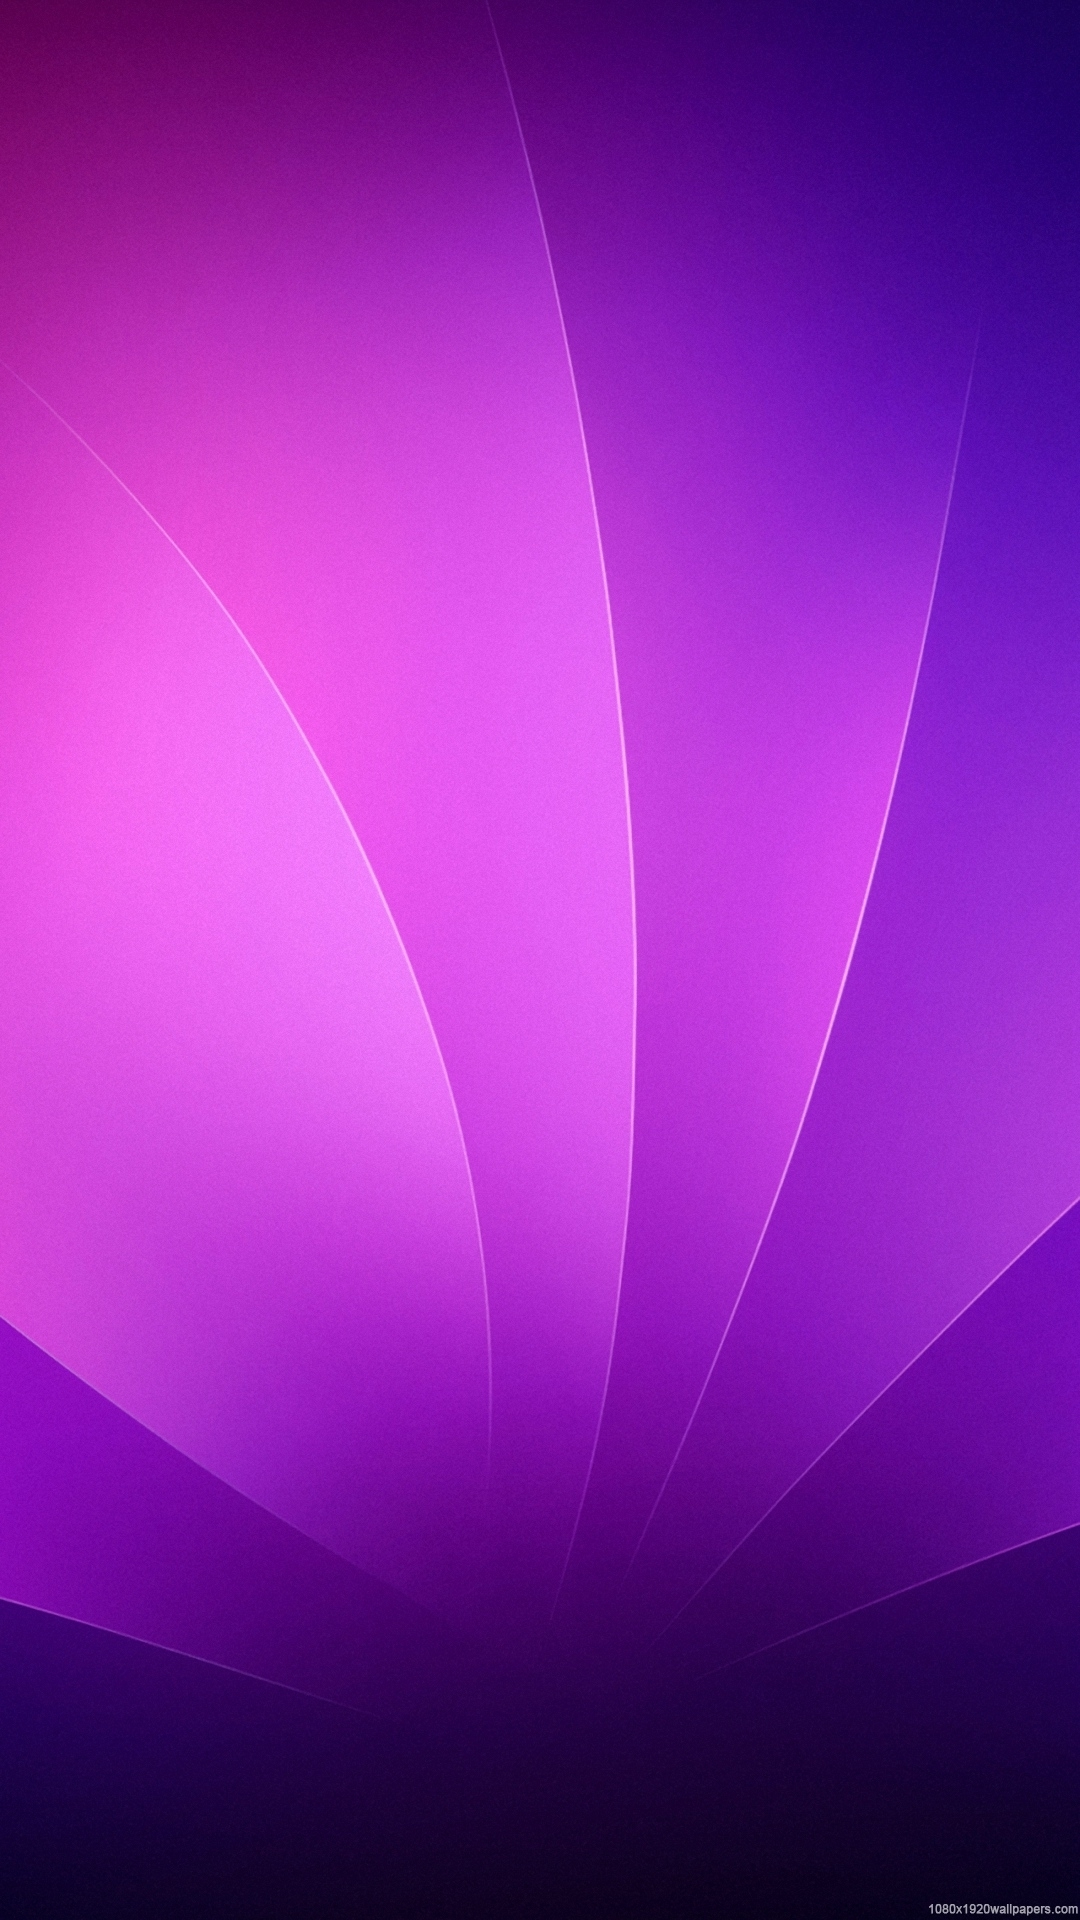 1080x1920 leaves line abstract purple wallpapers hd - 1080p